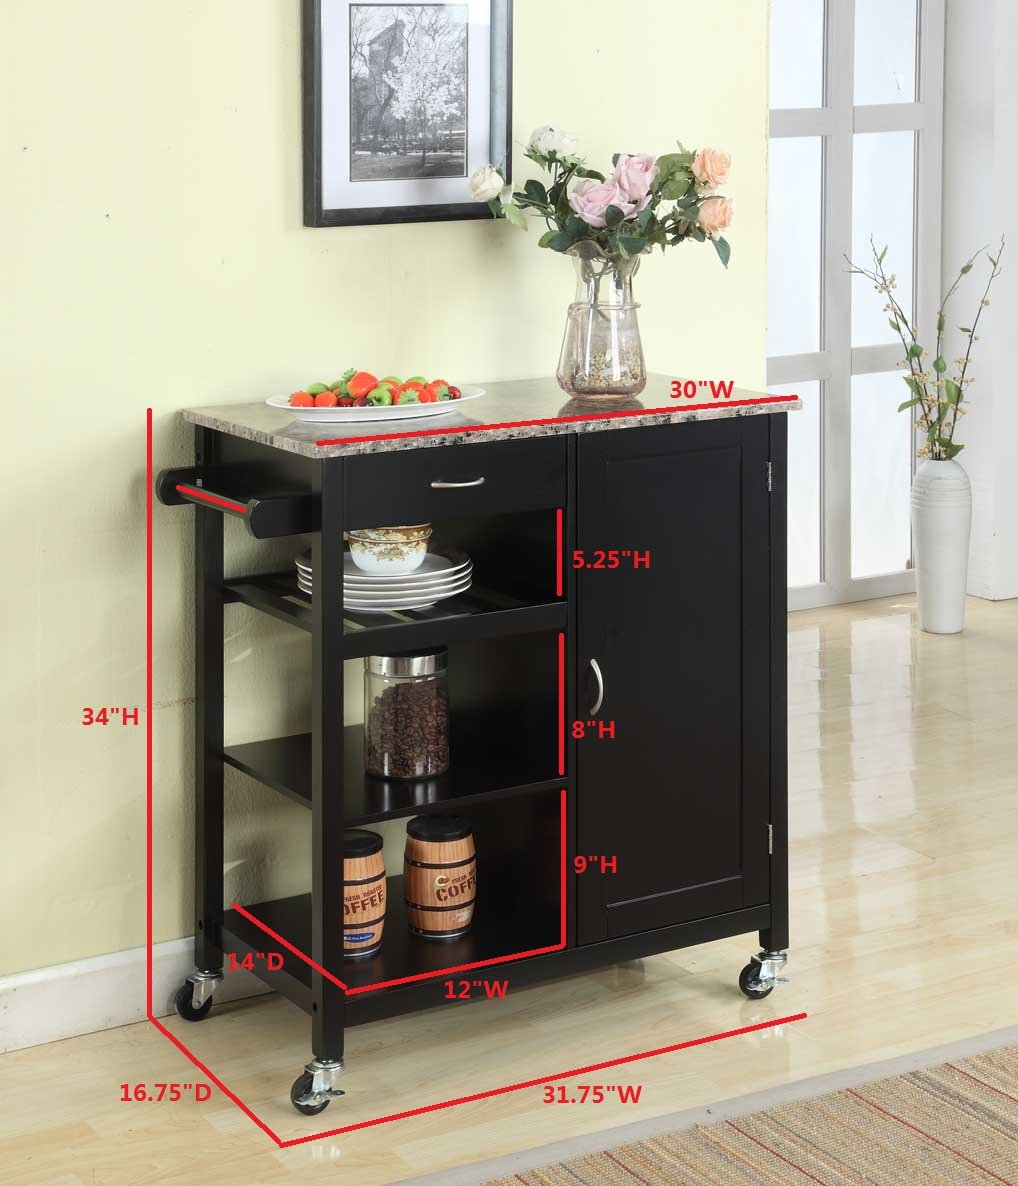 Amazon.com: Kingu0027s Brand Black Finish Wood U0026 Marble Finish Top Kitchen  Storage Cabinet Cart: Kitchen U0026 Dining